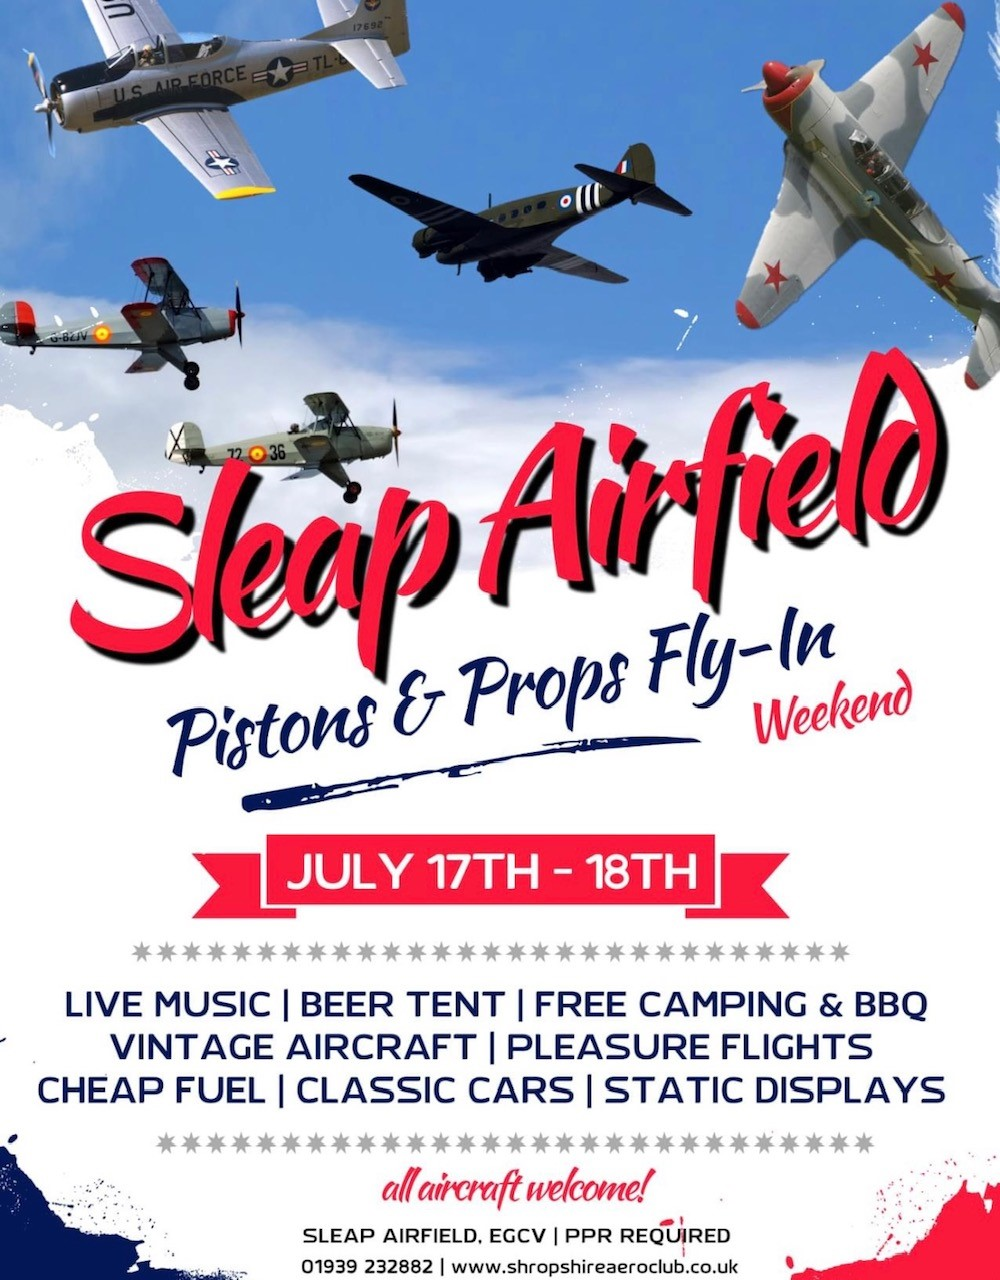 Flyout to Sleap Airfield